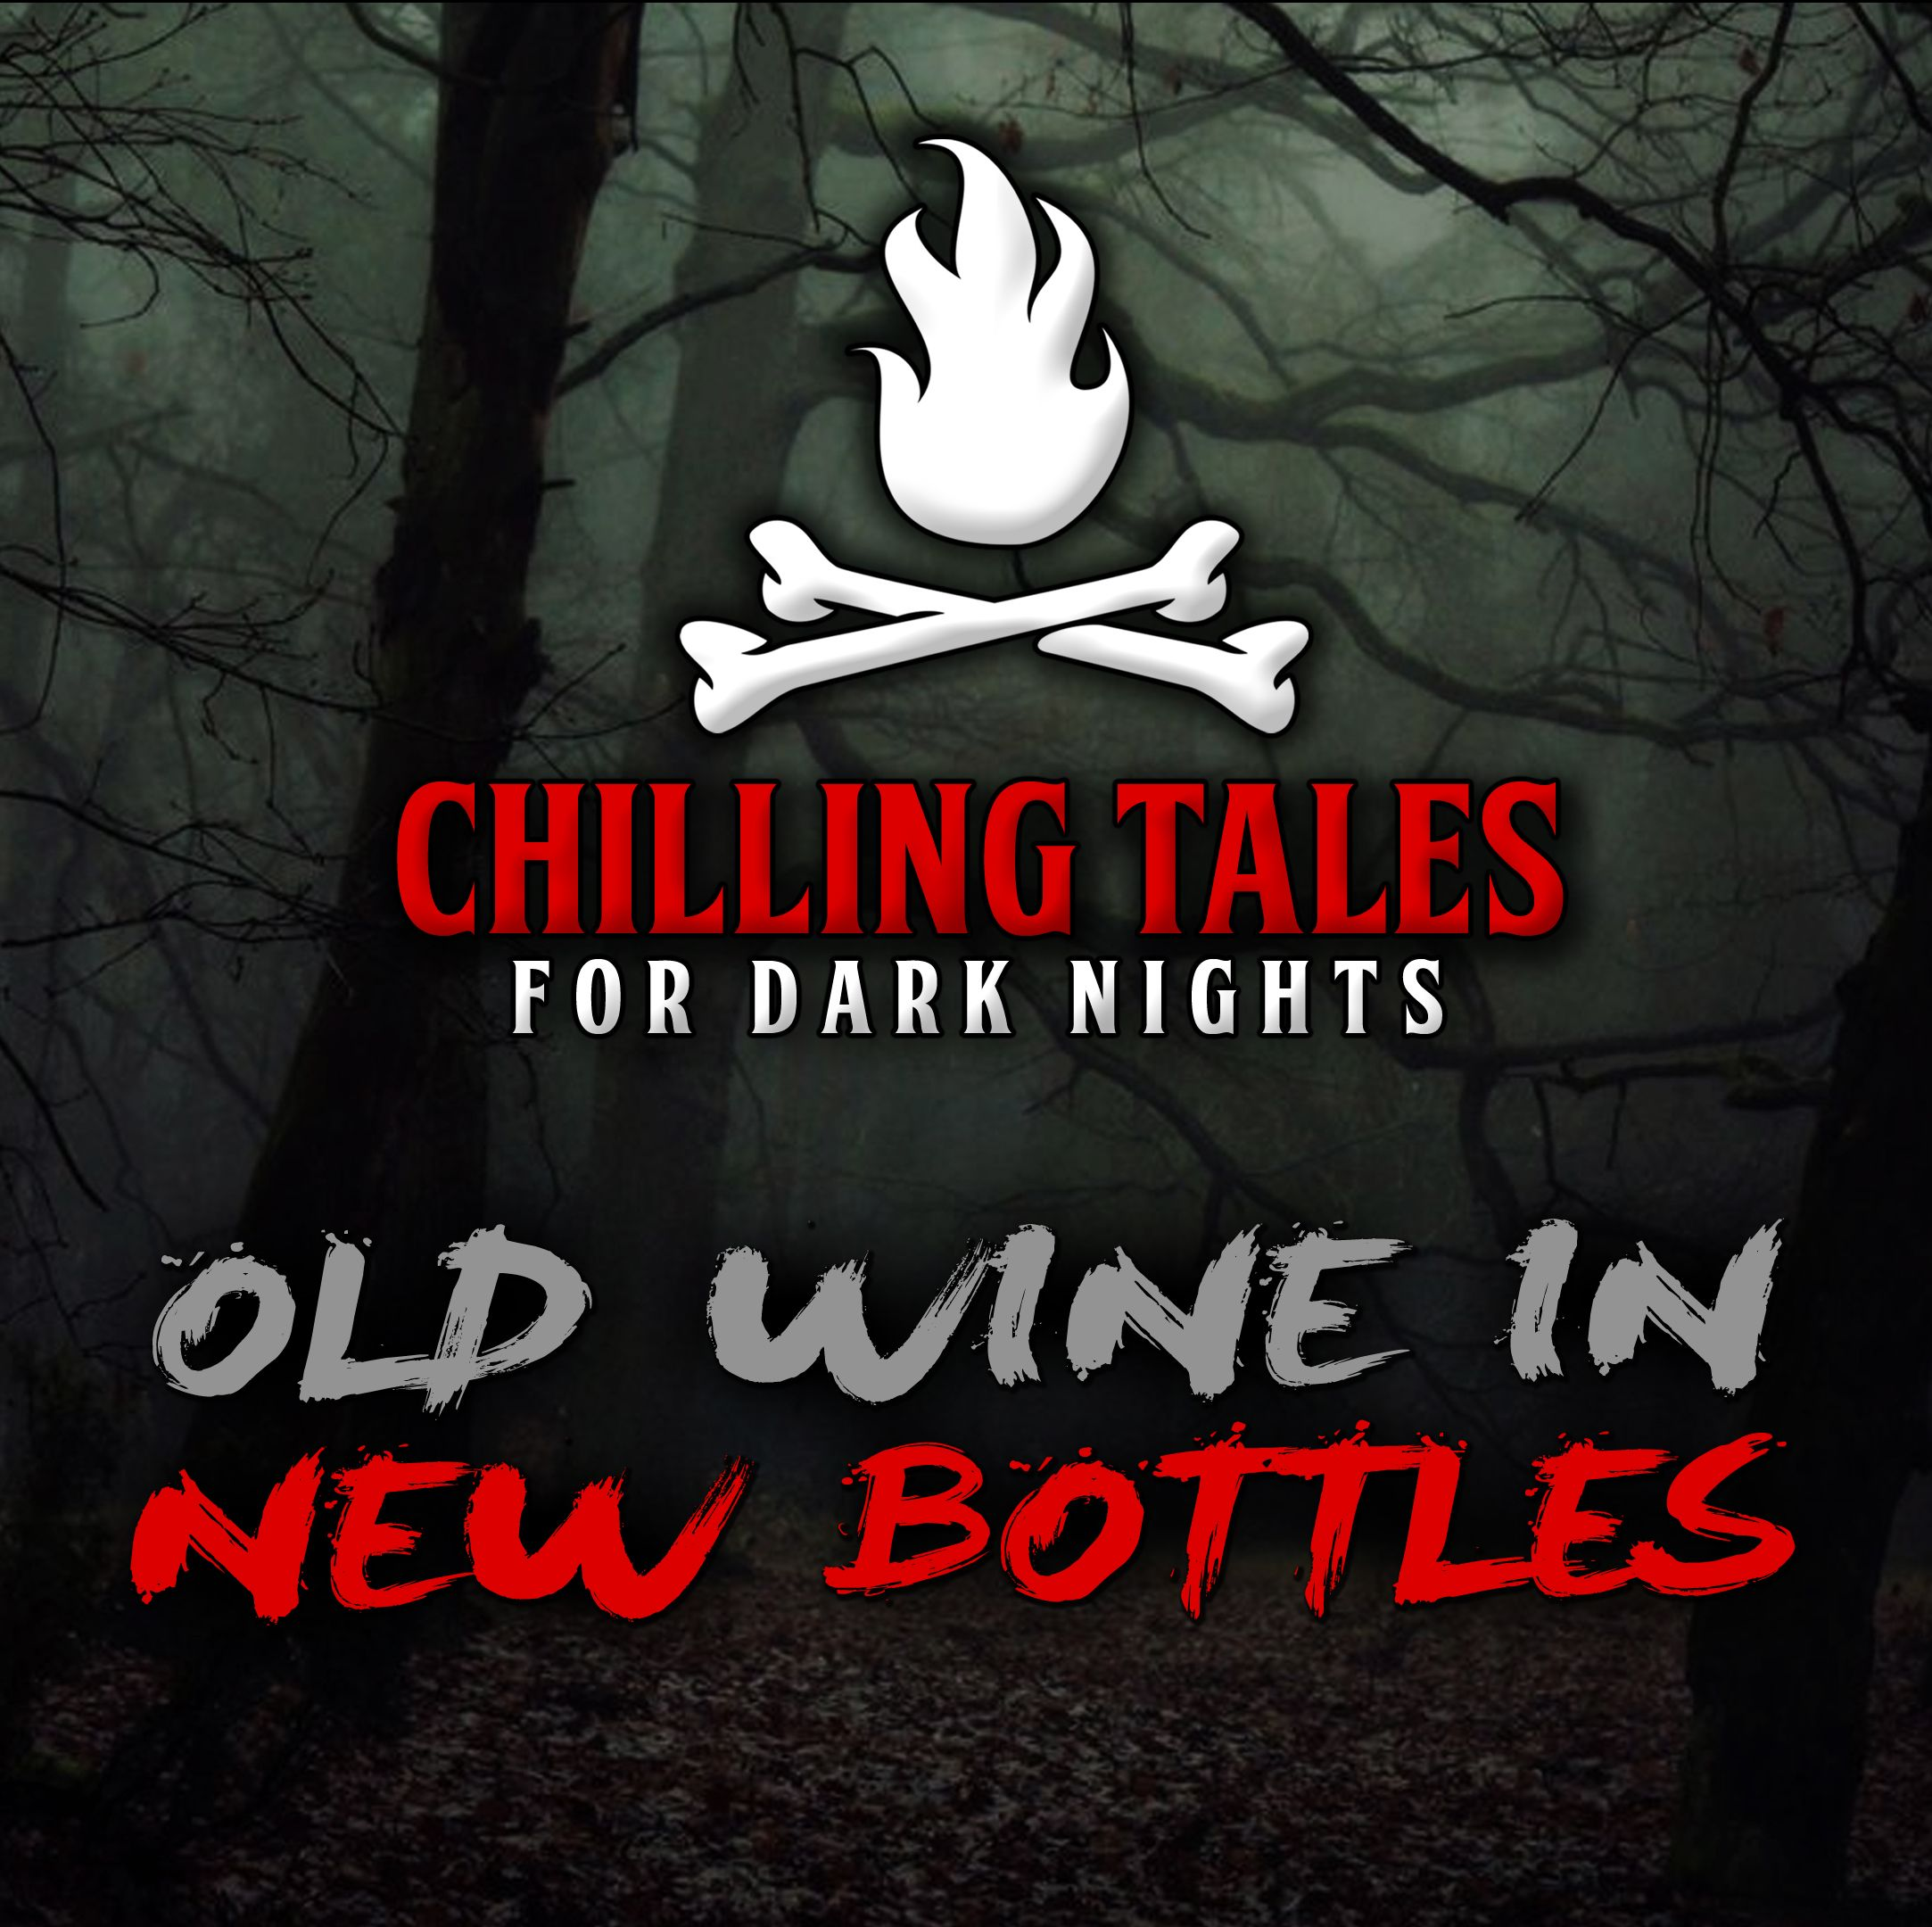 73: Old Wine in New Bottles – Chilling Tales for Dark Nights